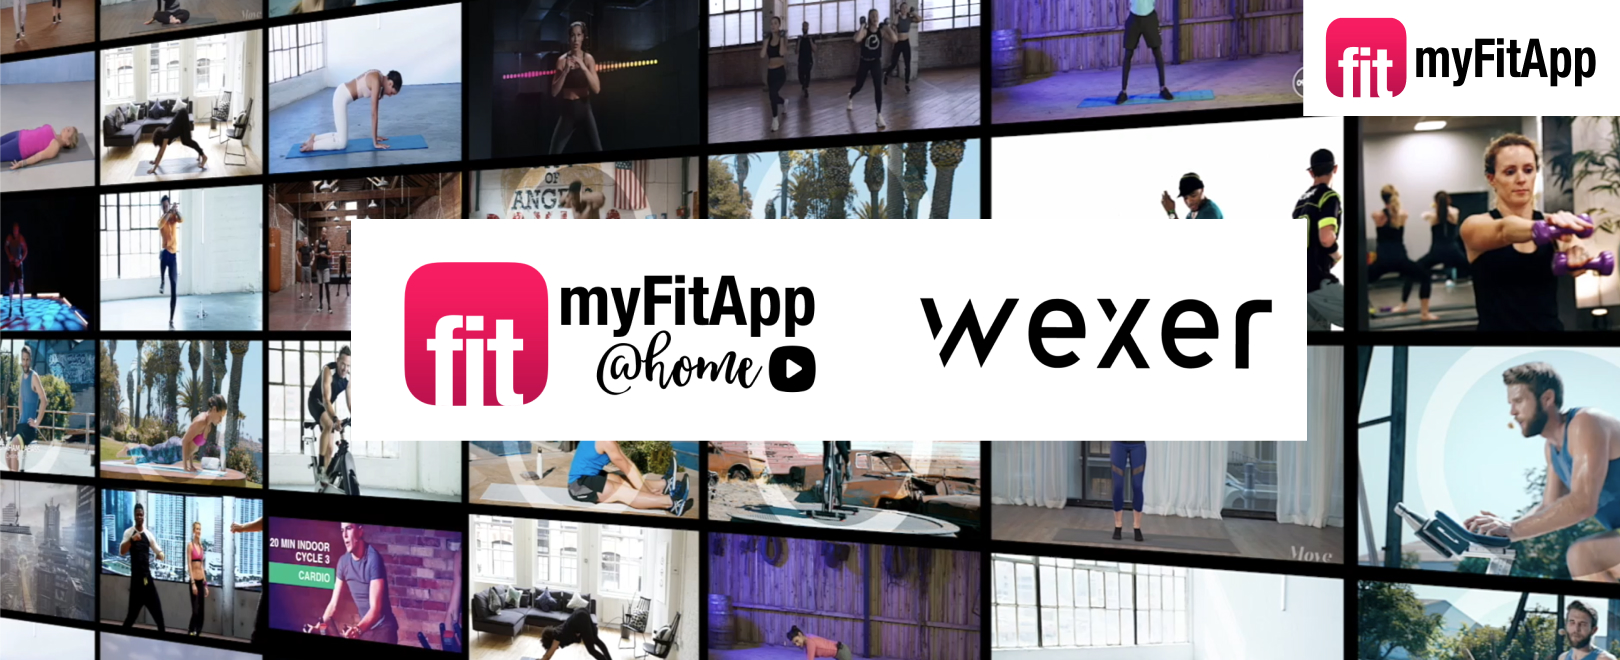 myFitApp@home Monetize your fitness video content with in-app purchase